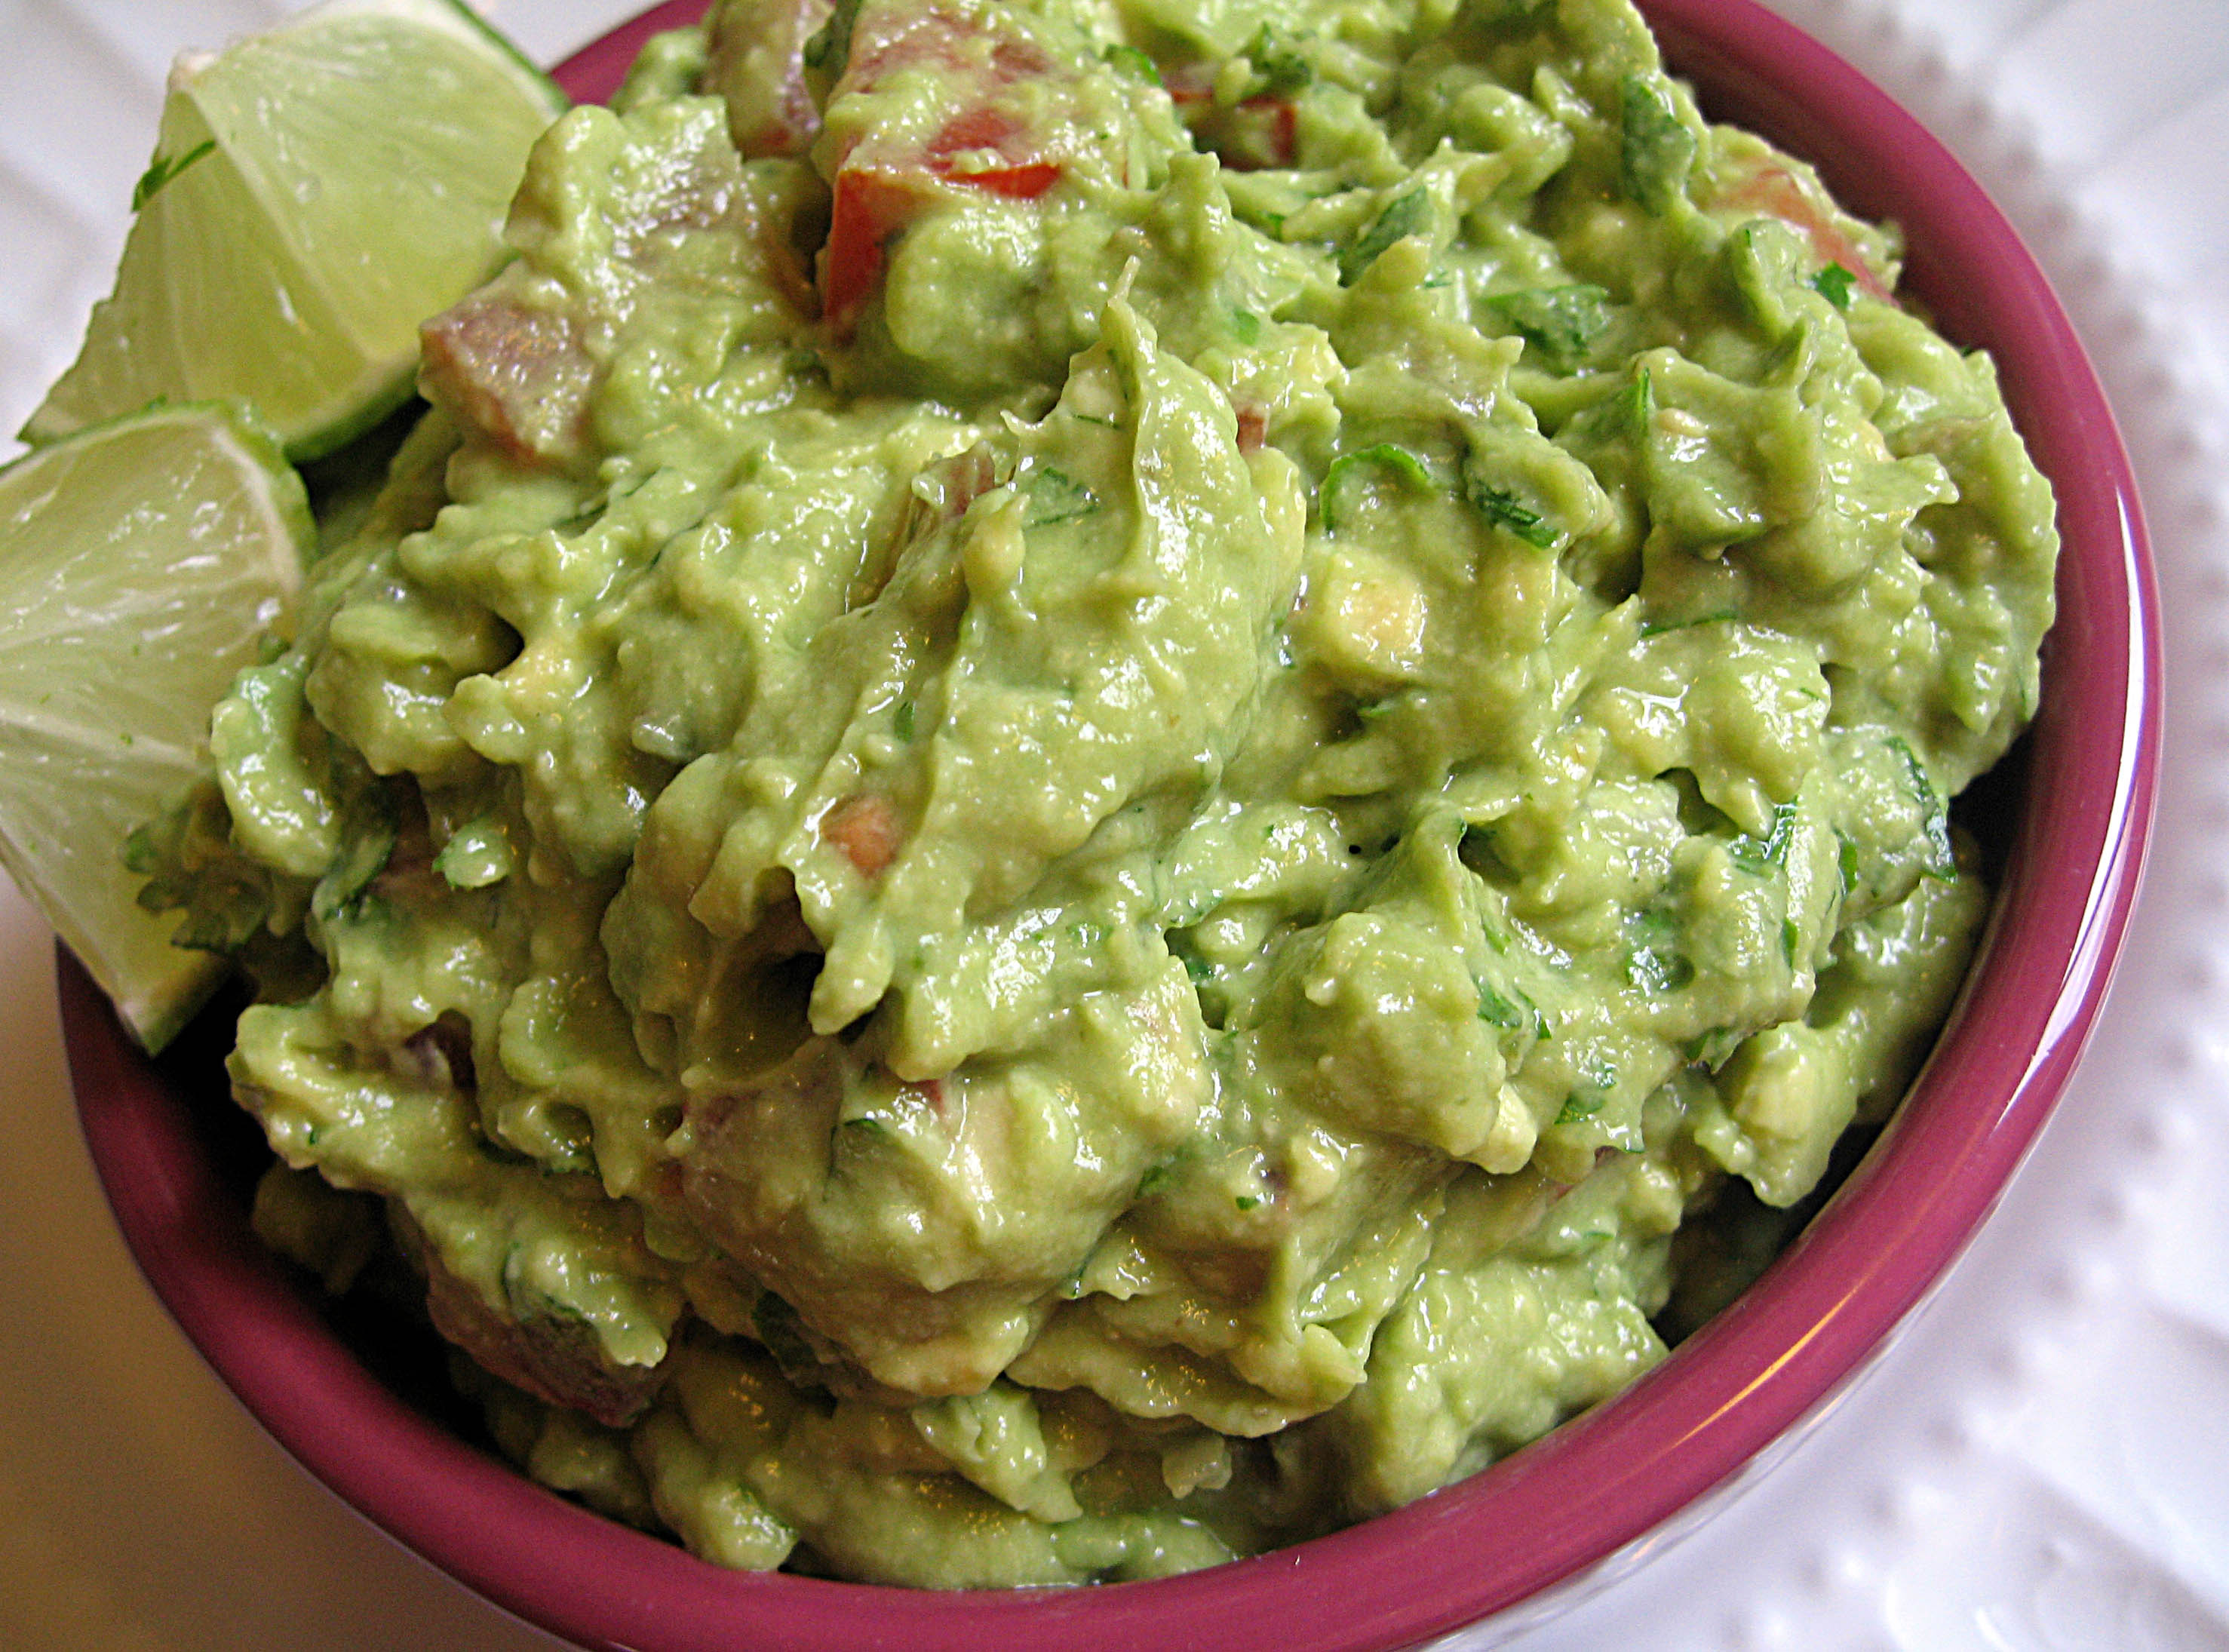 Guacamole | Our Life in Food